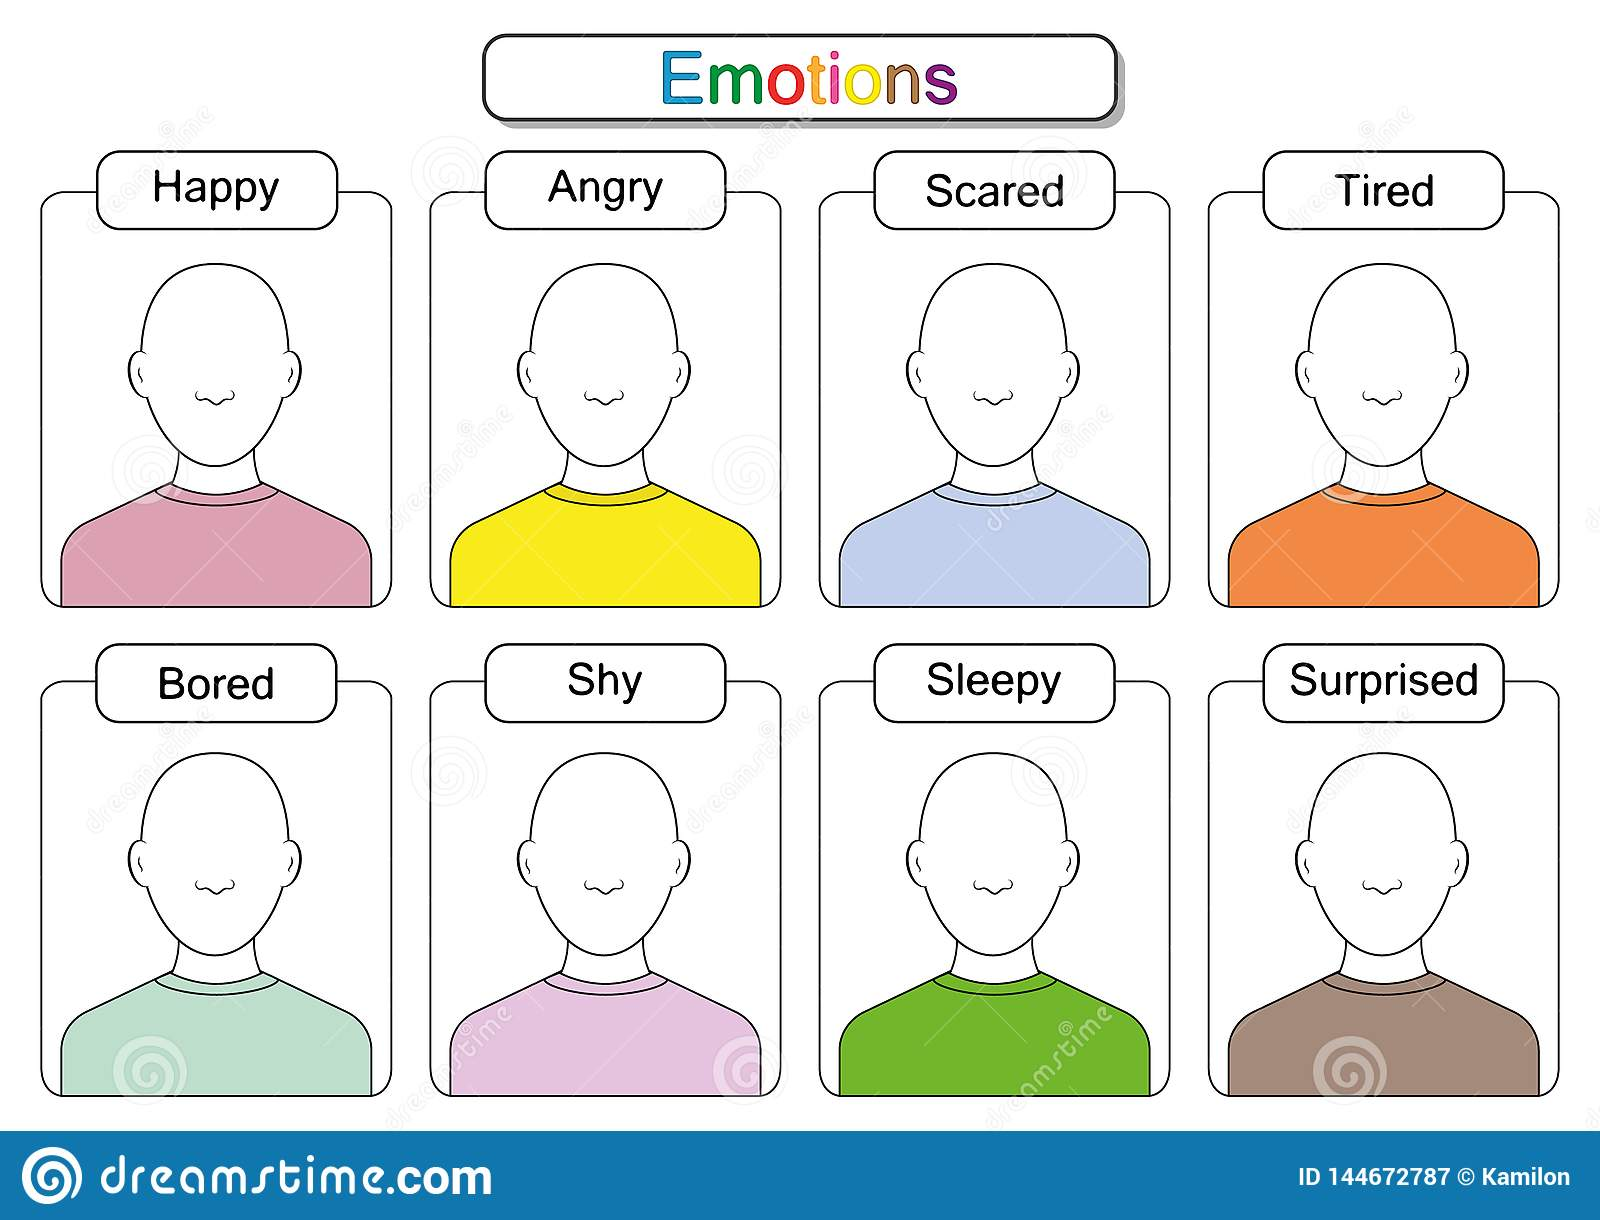 Children Are Learning Emotions, Draw The Faces, Draw The ...